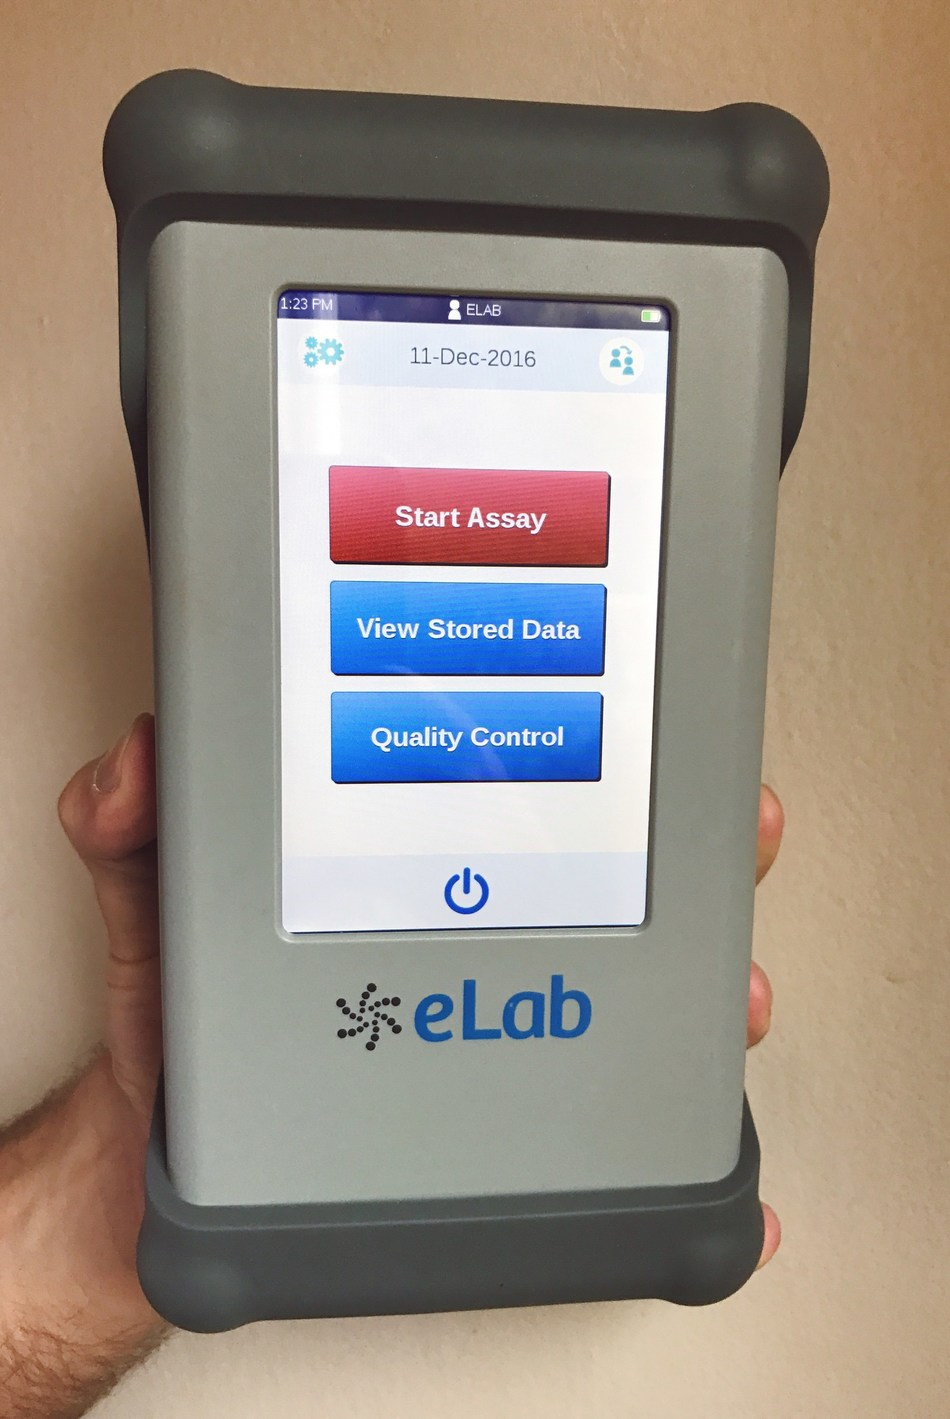 The Nanomix eLab is simple to operate via an intuitive user interface on a color touch screen and incorporates a proprietary nano-biosensor for high quality, reliable performance. The single-use disposable test cartridge uses the patient's whole blood, without sample preparation. All test functions are controlled and automatically processed by the device. The robust system design supports use in almost any setting, inside or outside of the traditional laboratory environment.